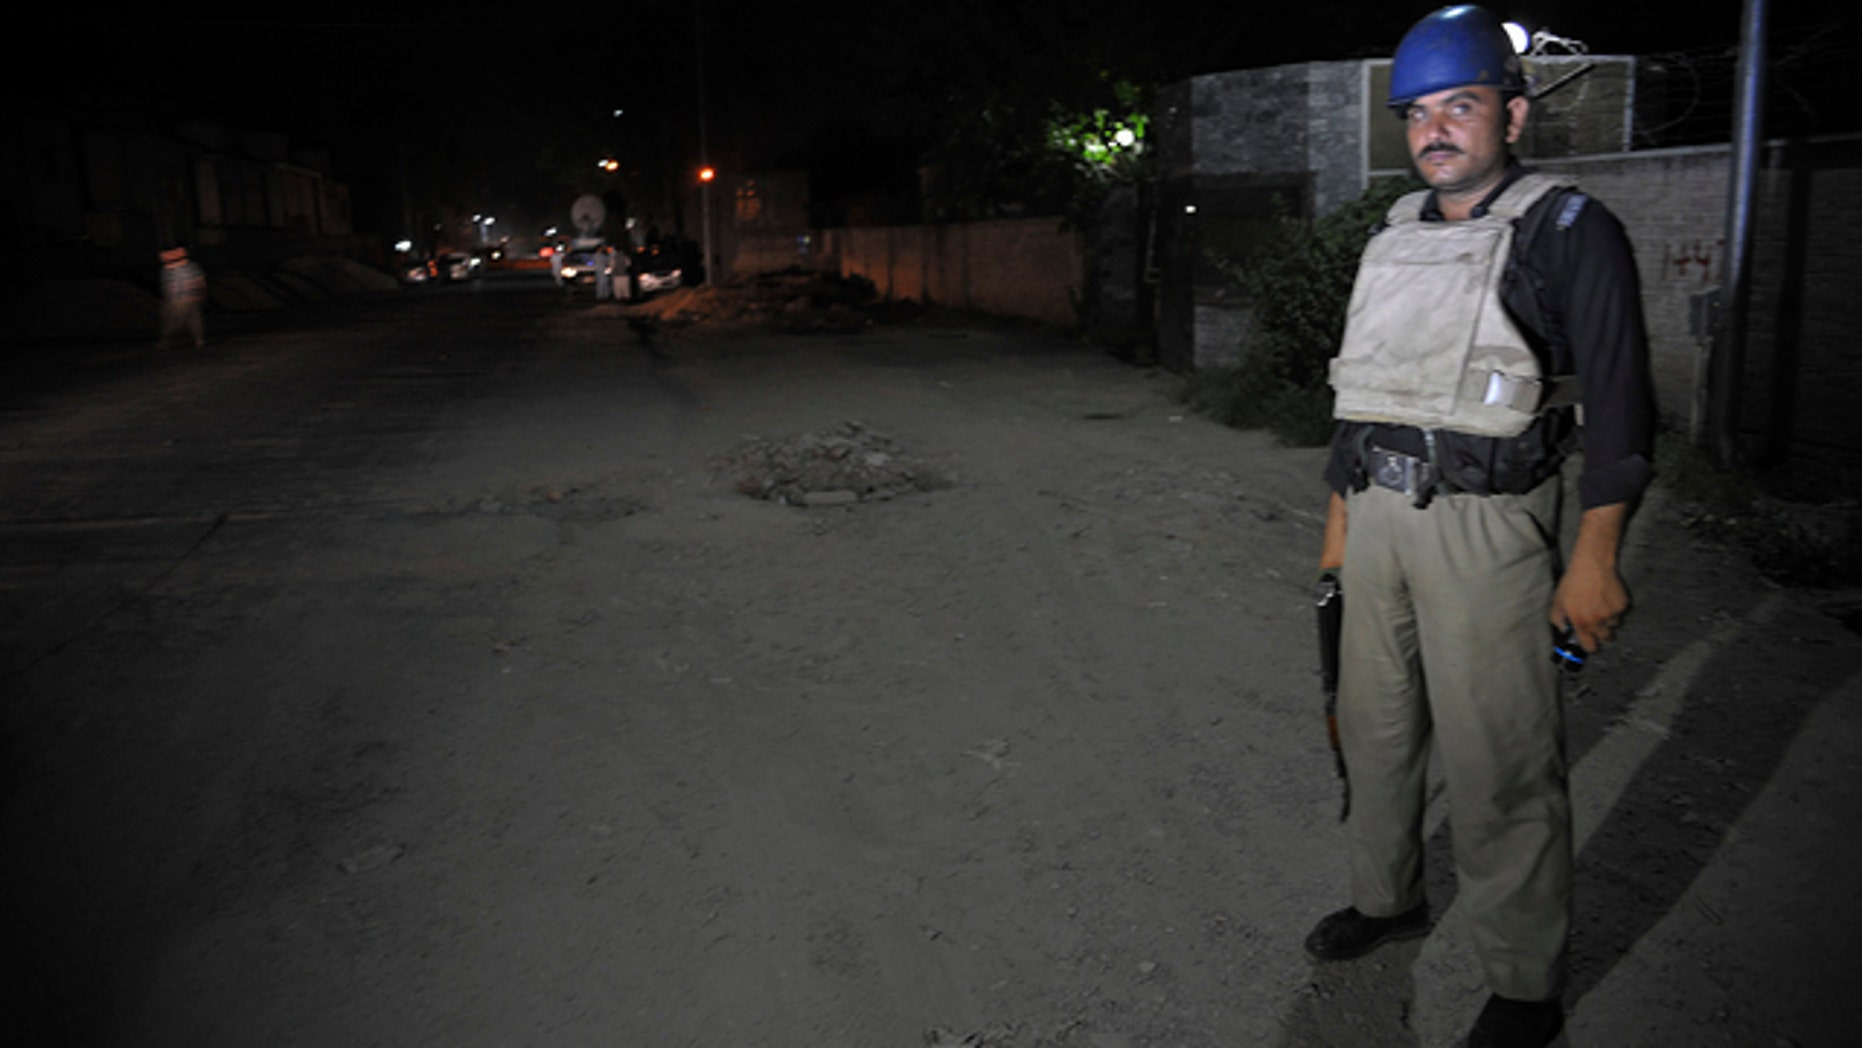 June 25, 2014: A Pakistani police officer stands guard near Peshawar airport which is cordon off, Wednesday, June 25, 2014 in Pakistan. (AP Photo/Mohammad Sajjad)